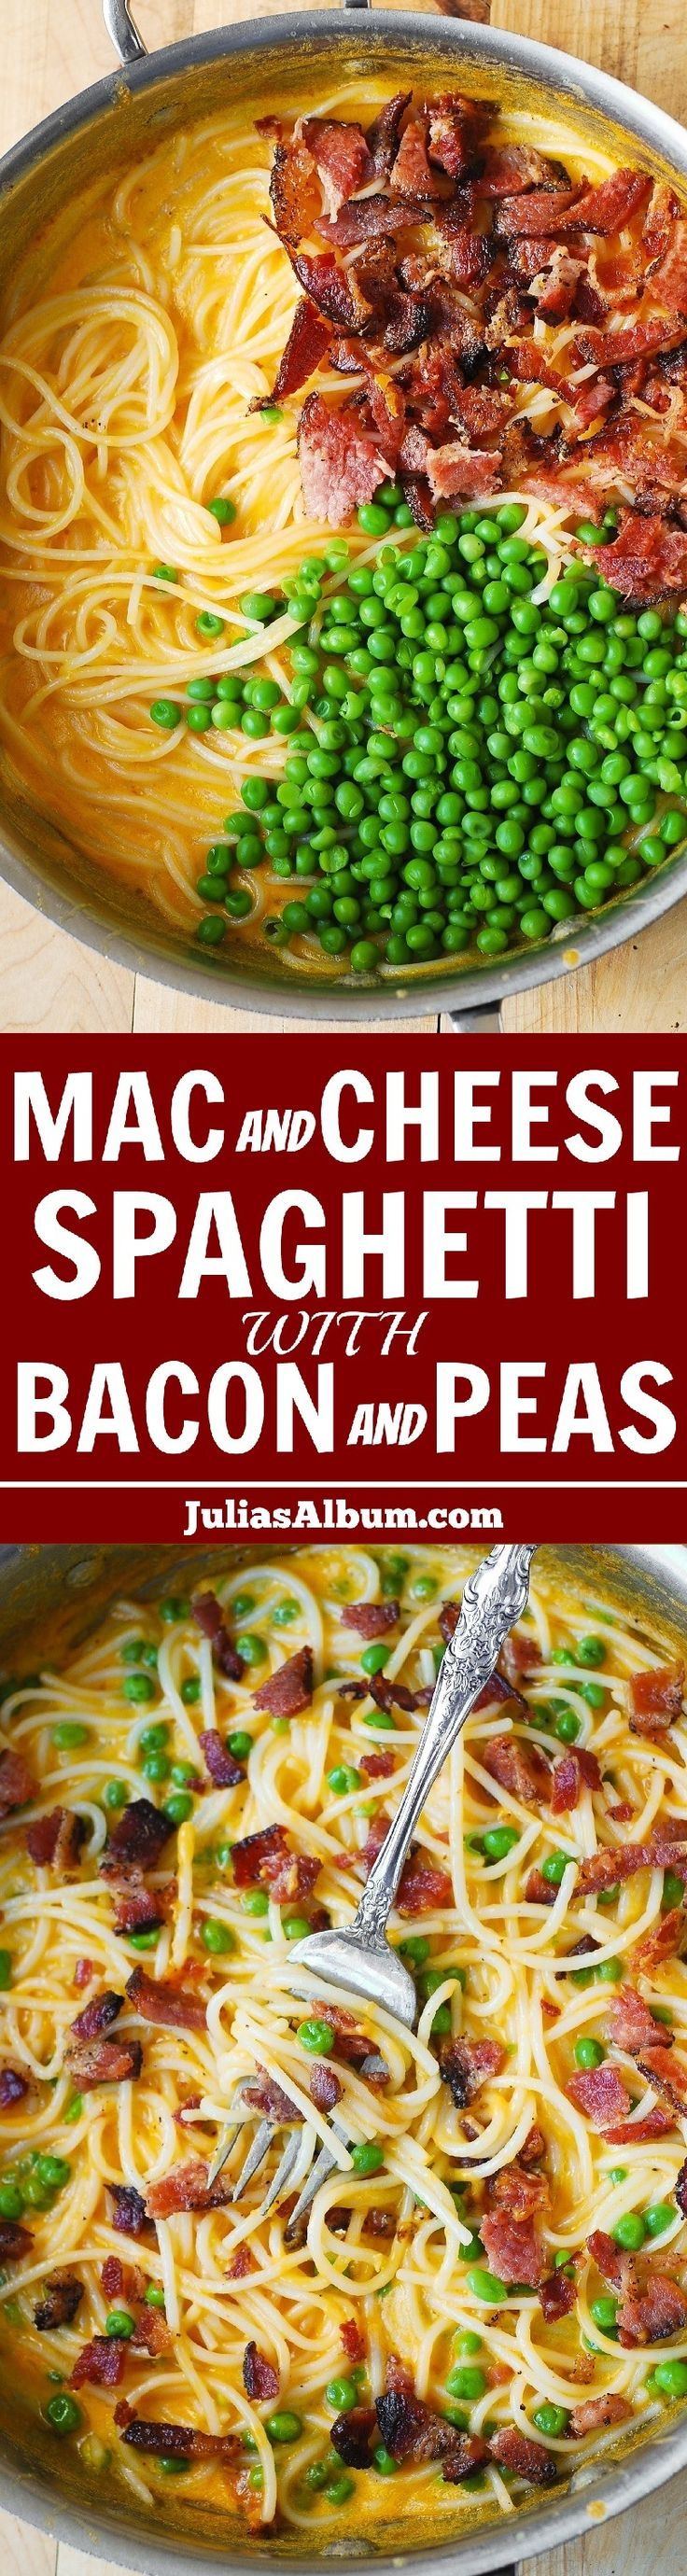 Mac and Cheese Spaghetti with Bacon and Peas (in a flavorful cheddar sauce). 30-minute meal!